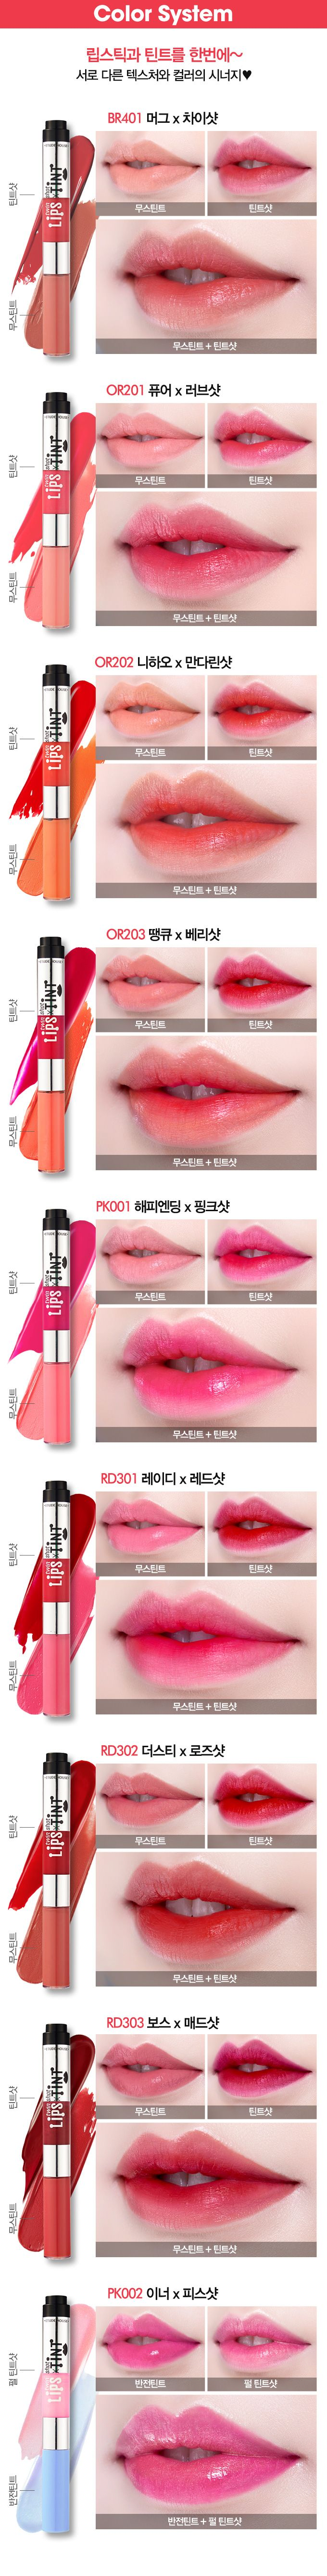 Etude House Twin Shot Lips Tint